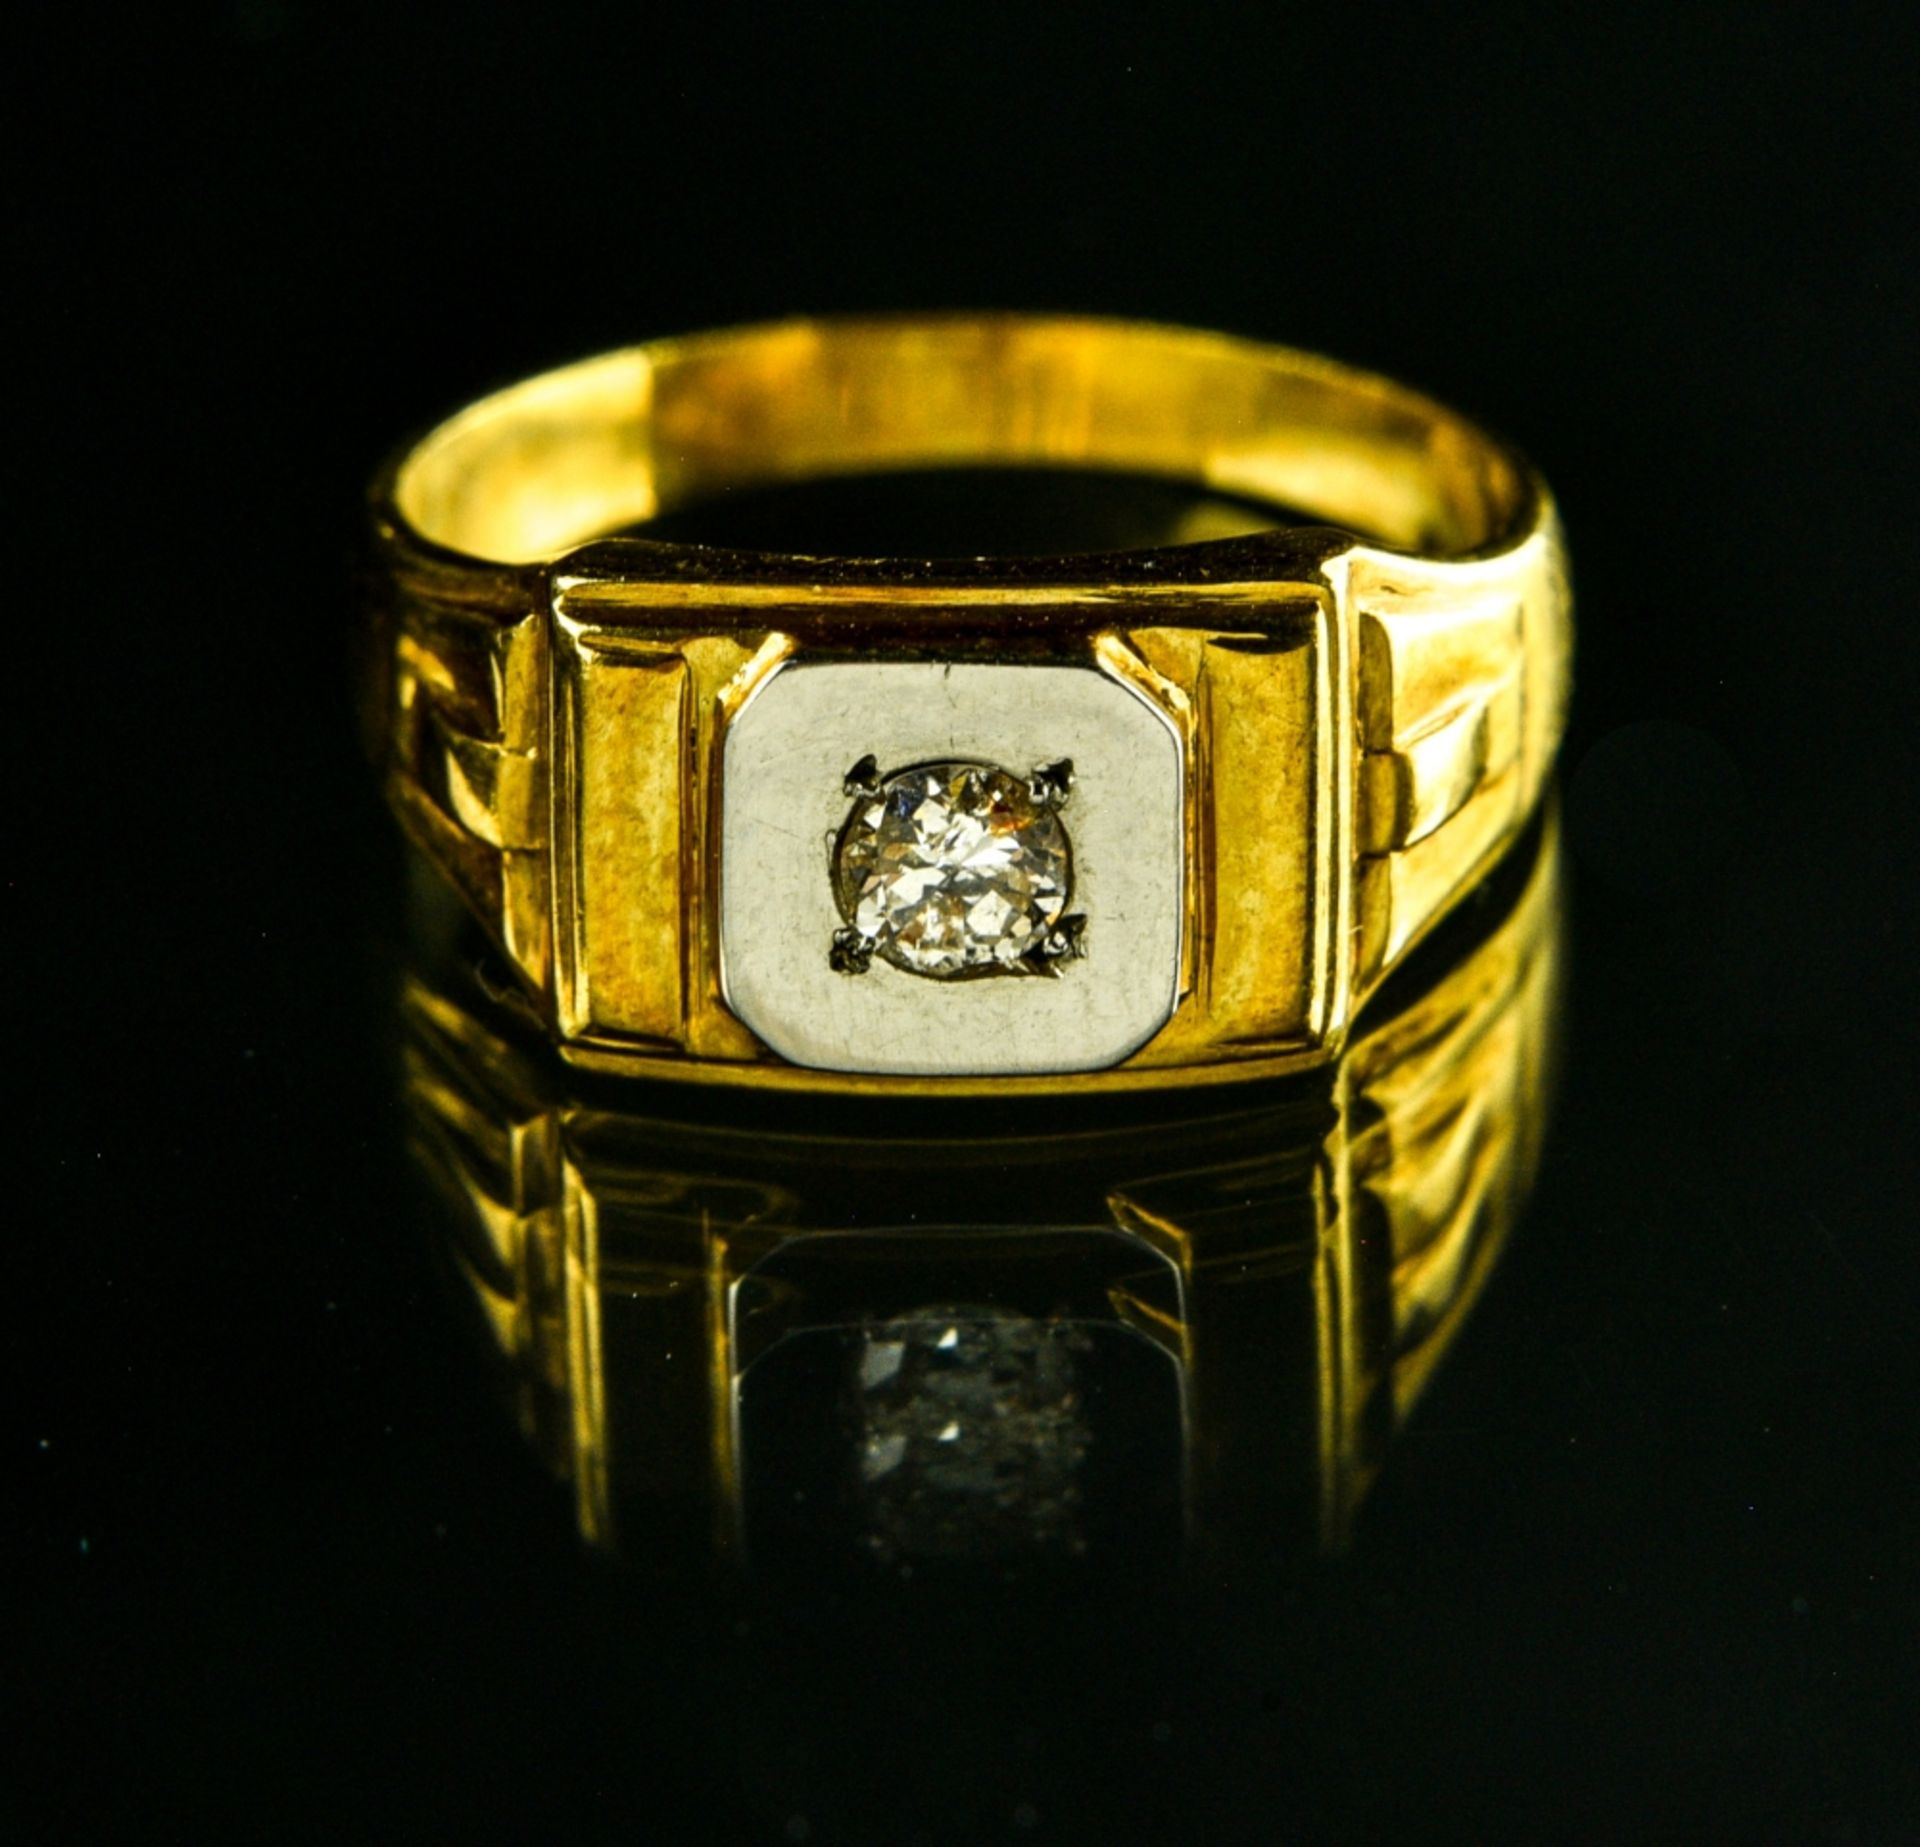 """Lot of 3 rings 18 kt white gold. 1. Signet ring without a hallmark, inscribed """"Yvette ˆ Jean"""" - Image 4 of 4"""